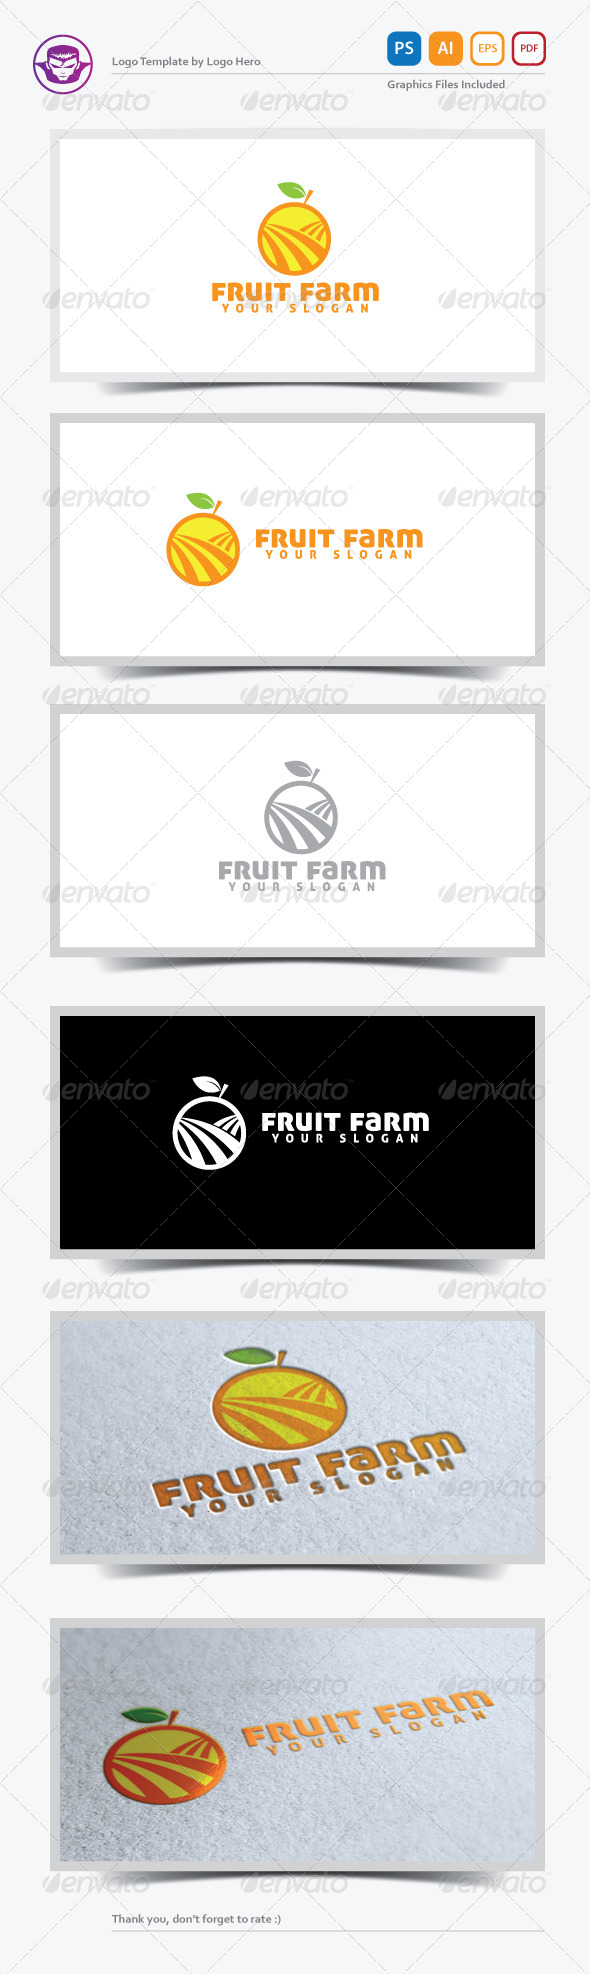 Fruit Farm Logo Template